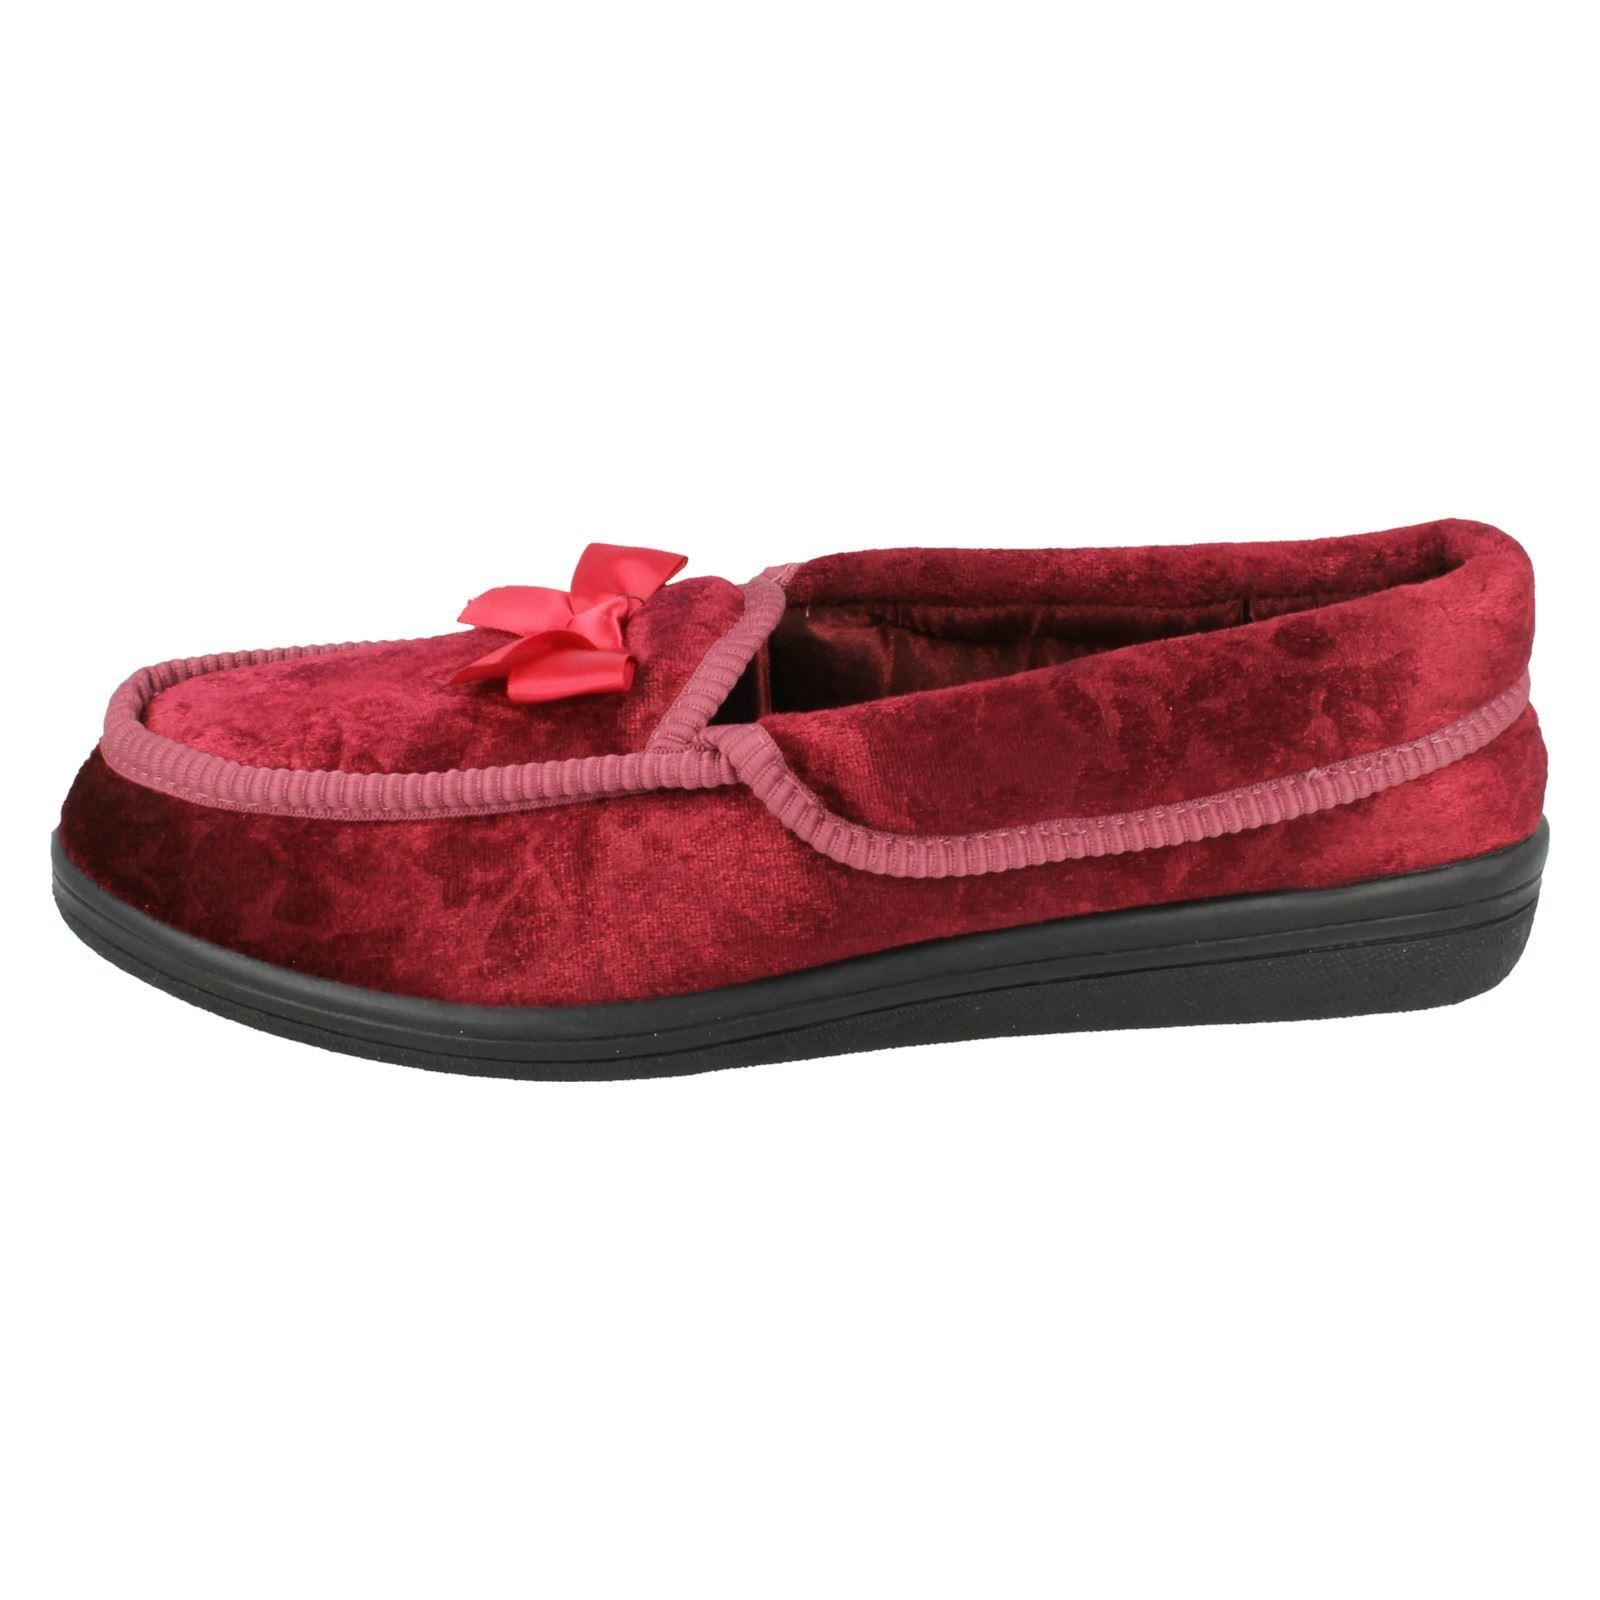 Ladies Four Seasons Slippers With Bow Detail